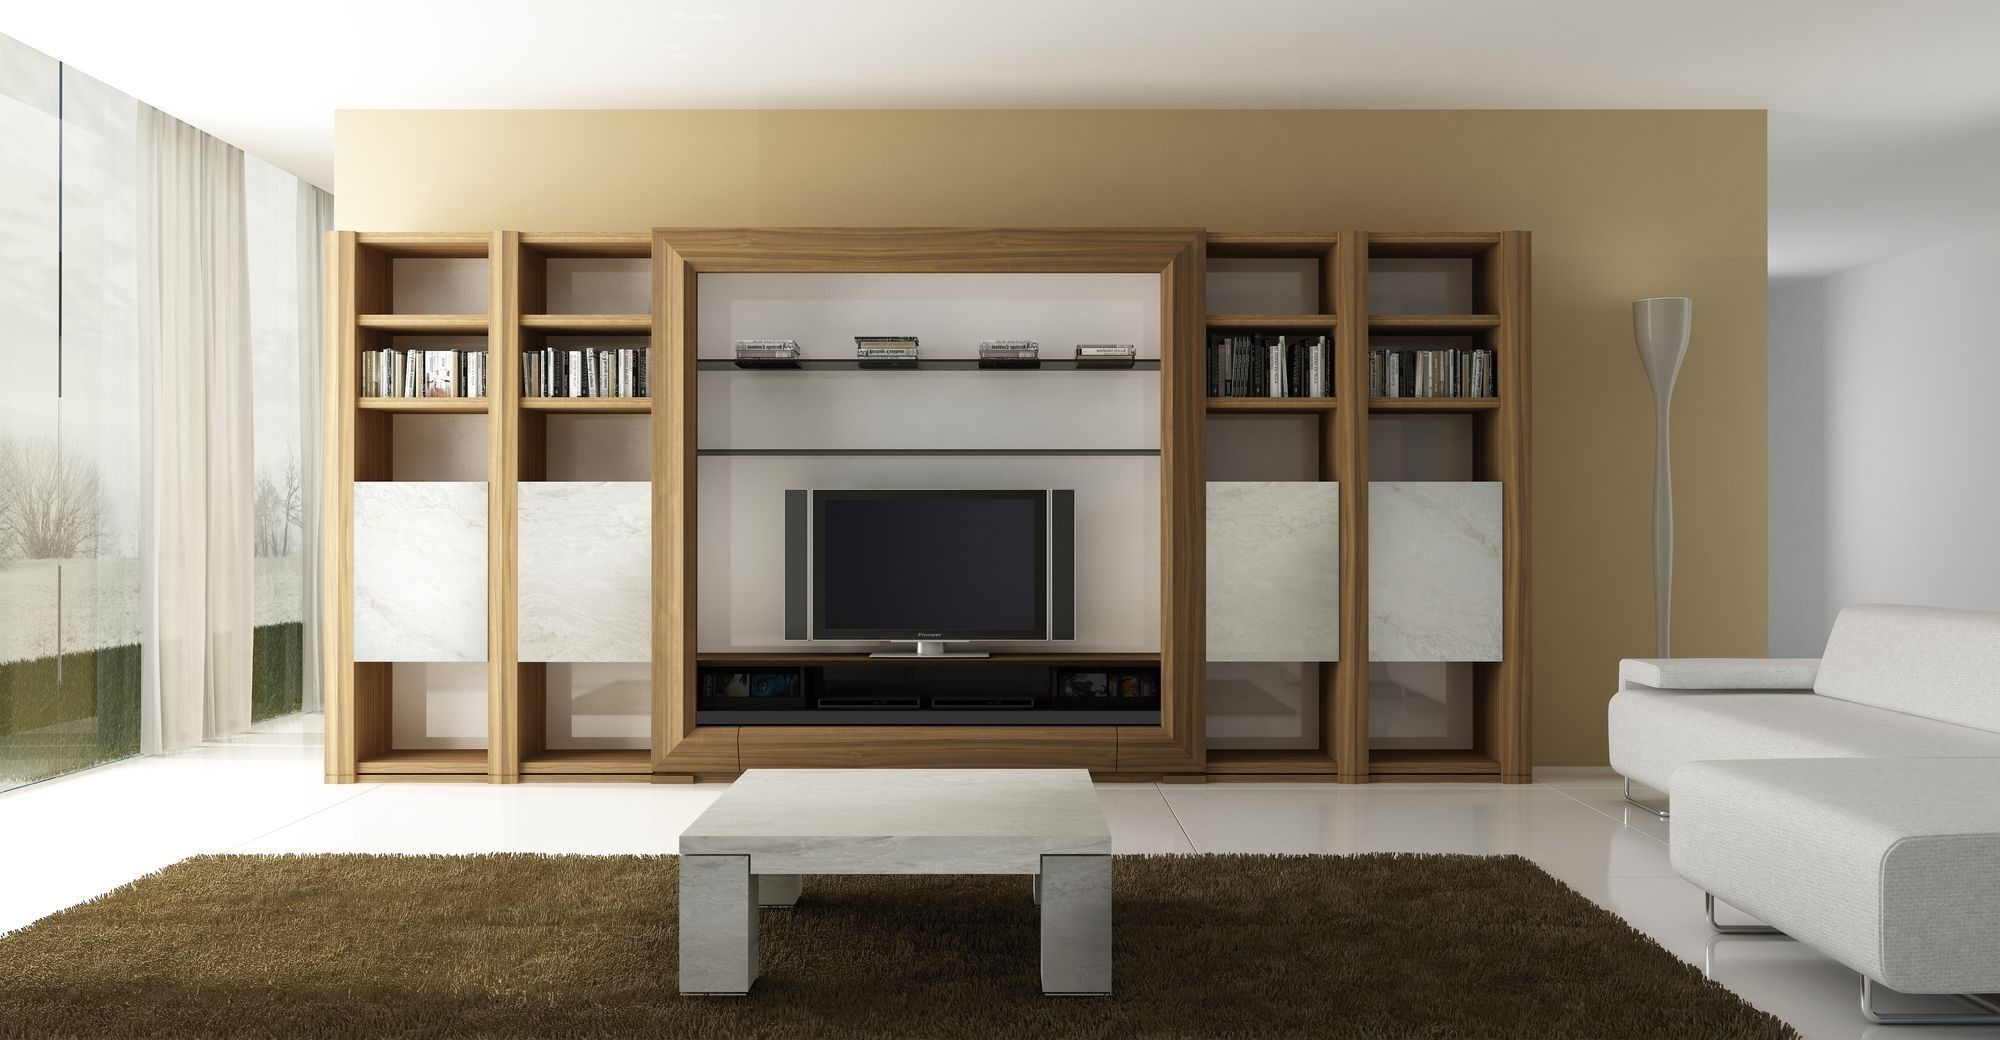 Wall Unit For Living Room Living Room Wall Unit With Side Panels Shelves Tv Compartment